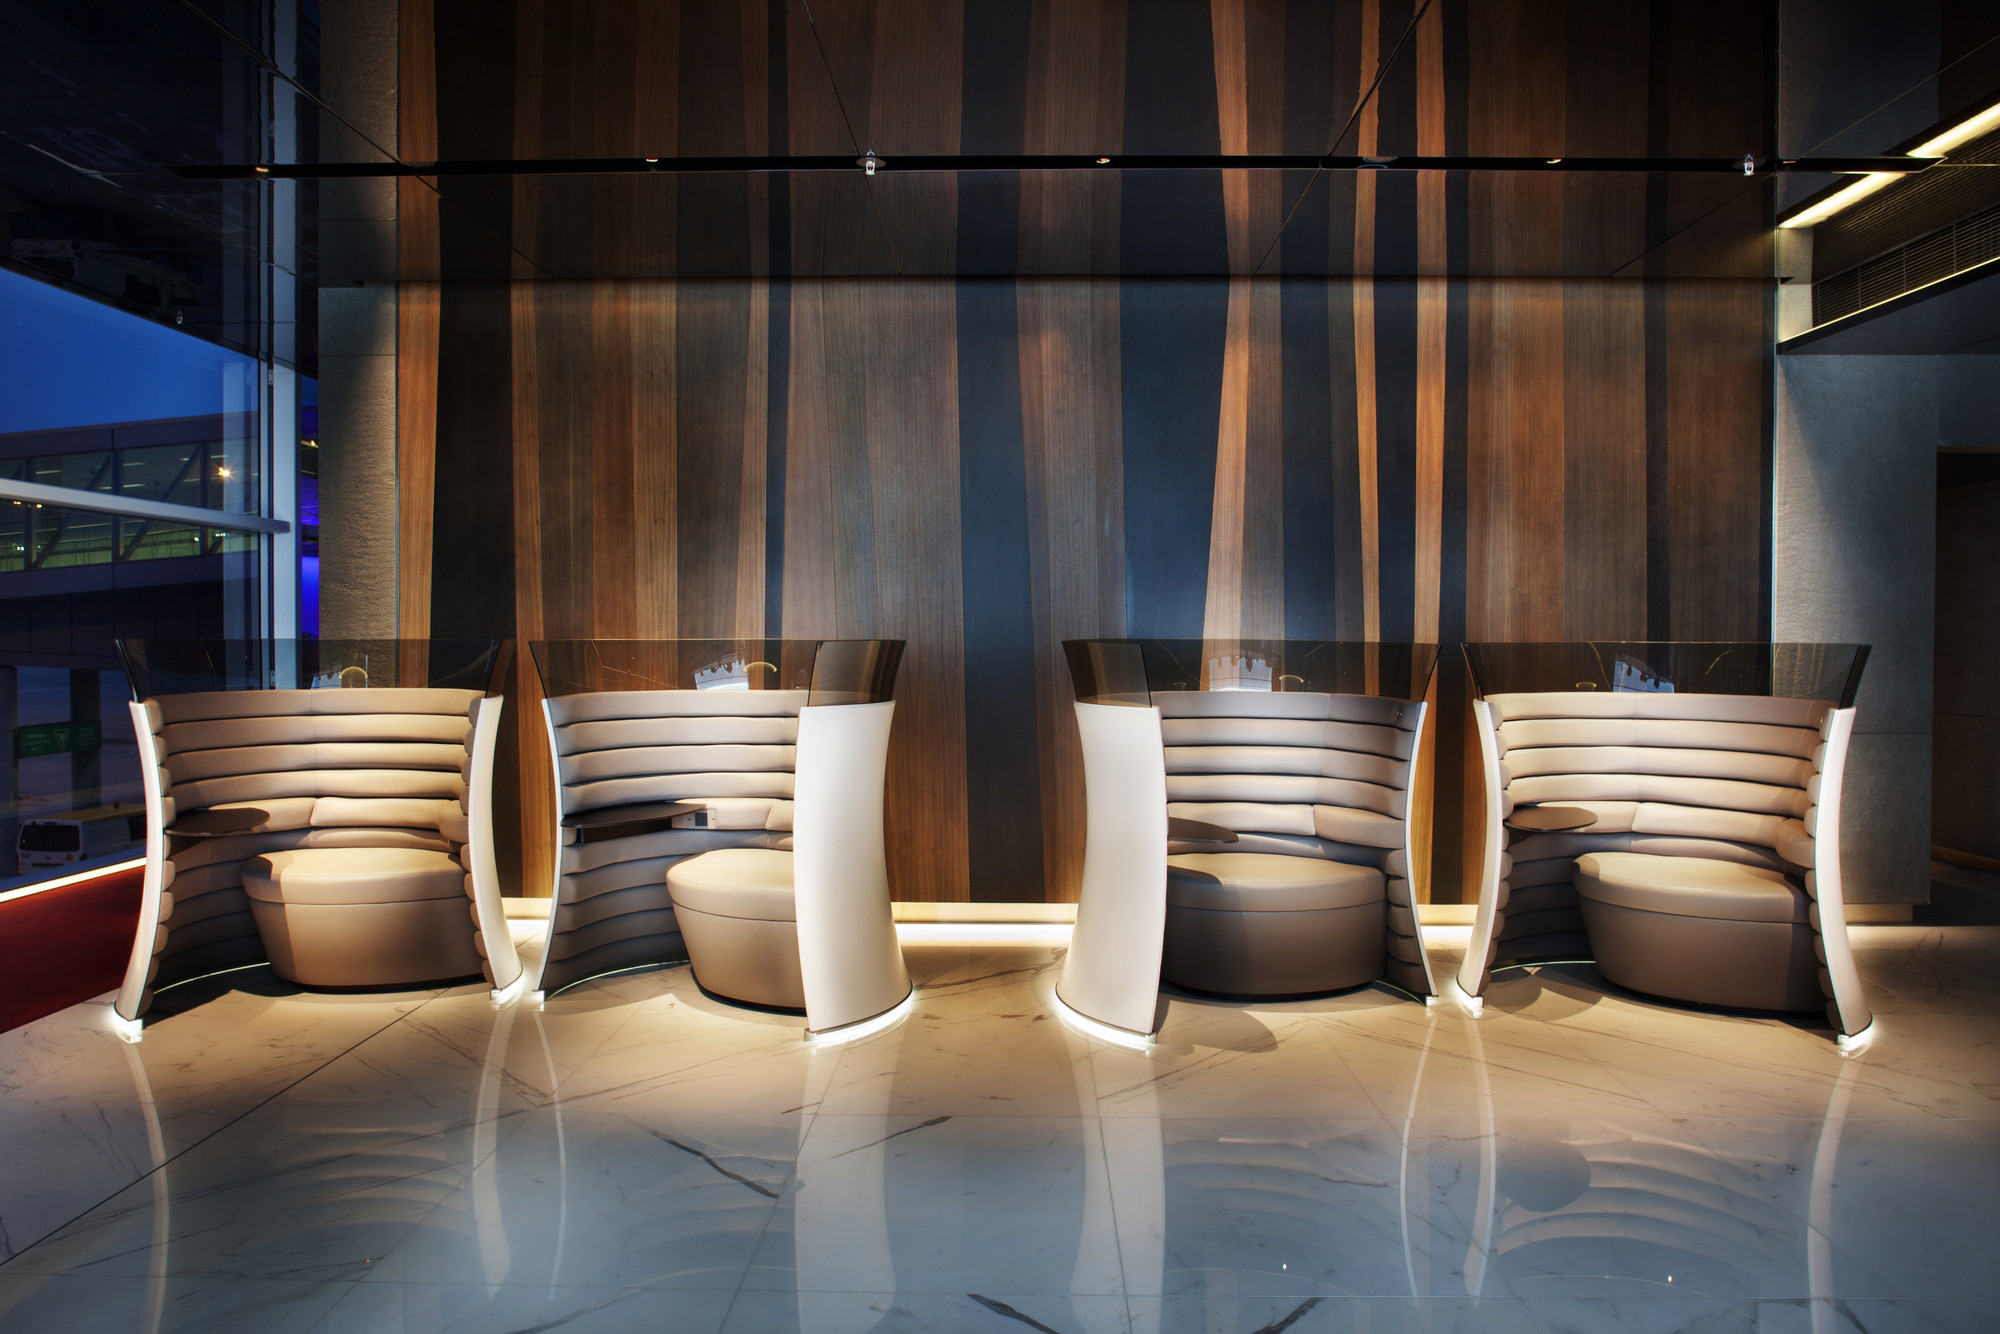 The Solus Chair in the lounges at Hong Kong International Airport, also designed by Foster + Partners. Image courtesy of Foster + Partners.